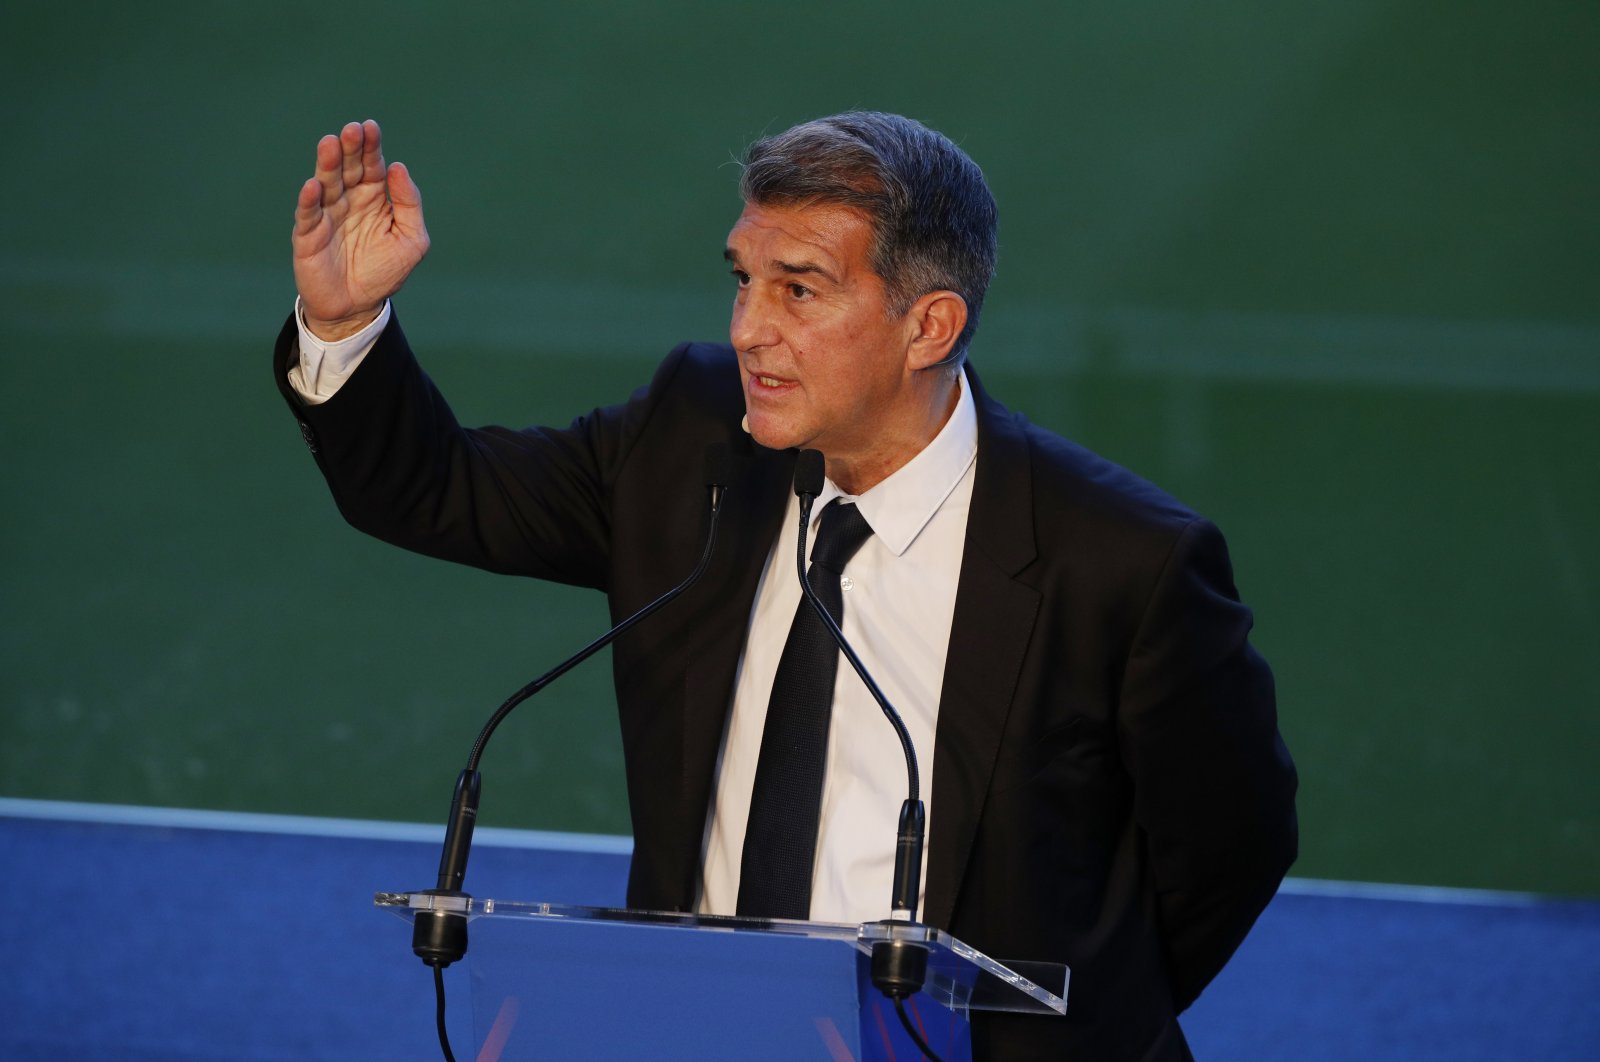 New Barcelona President Joan Laporta during the inauguration ceremony at Camp Nou, Barcelona, Spain, March 17, 2021. (Reuters Photo)